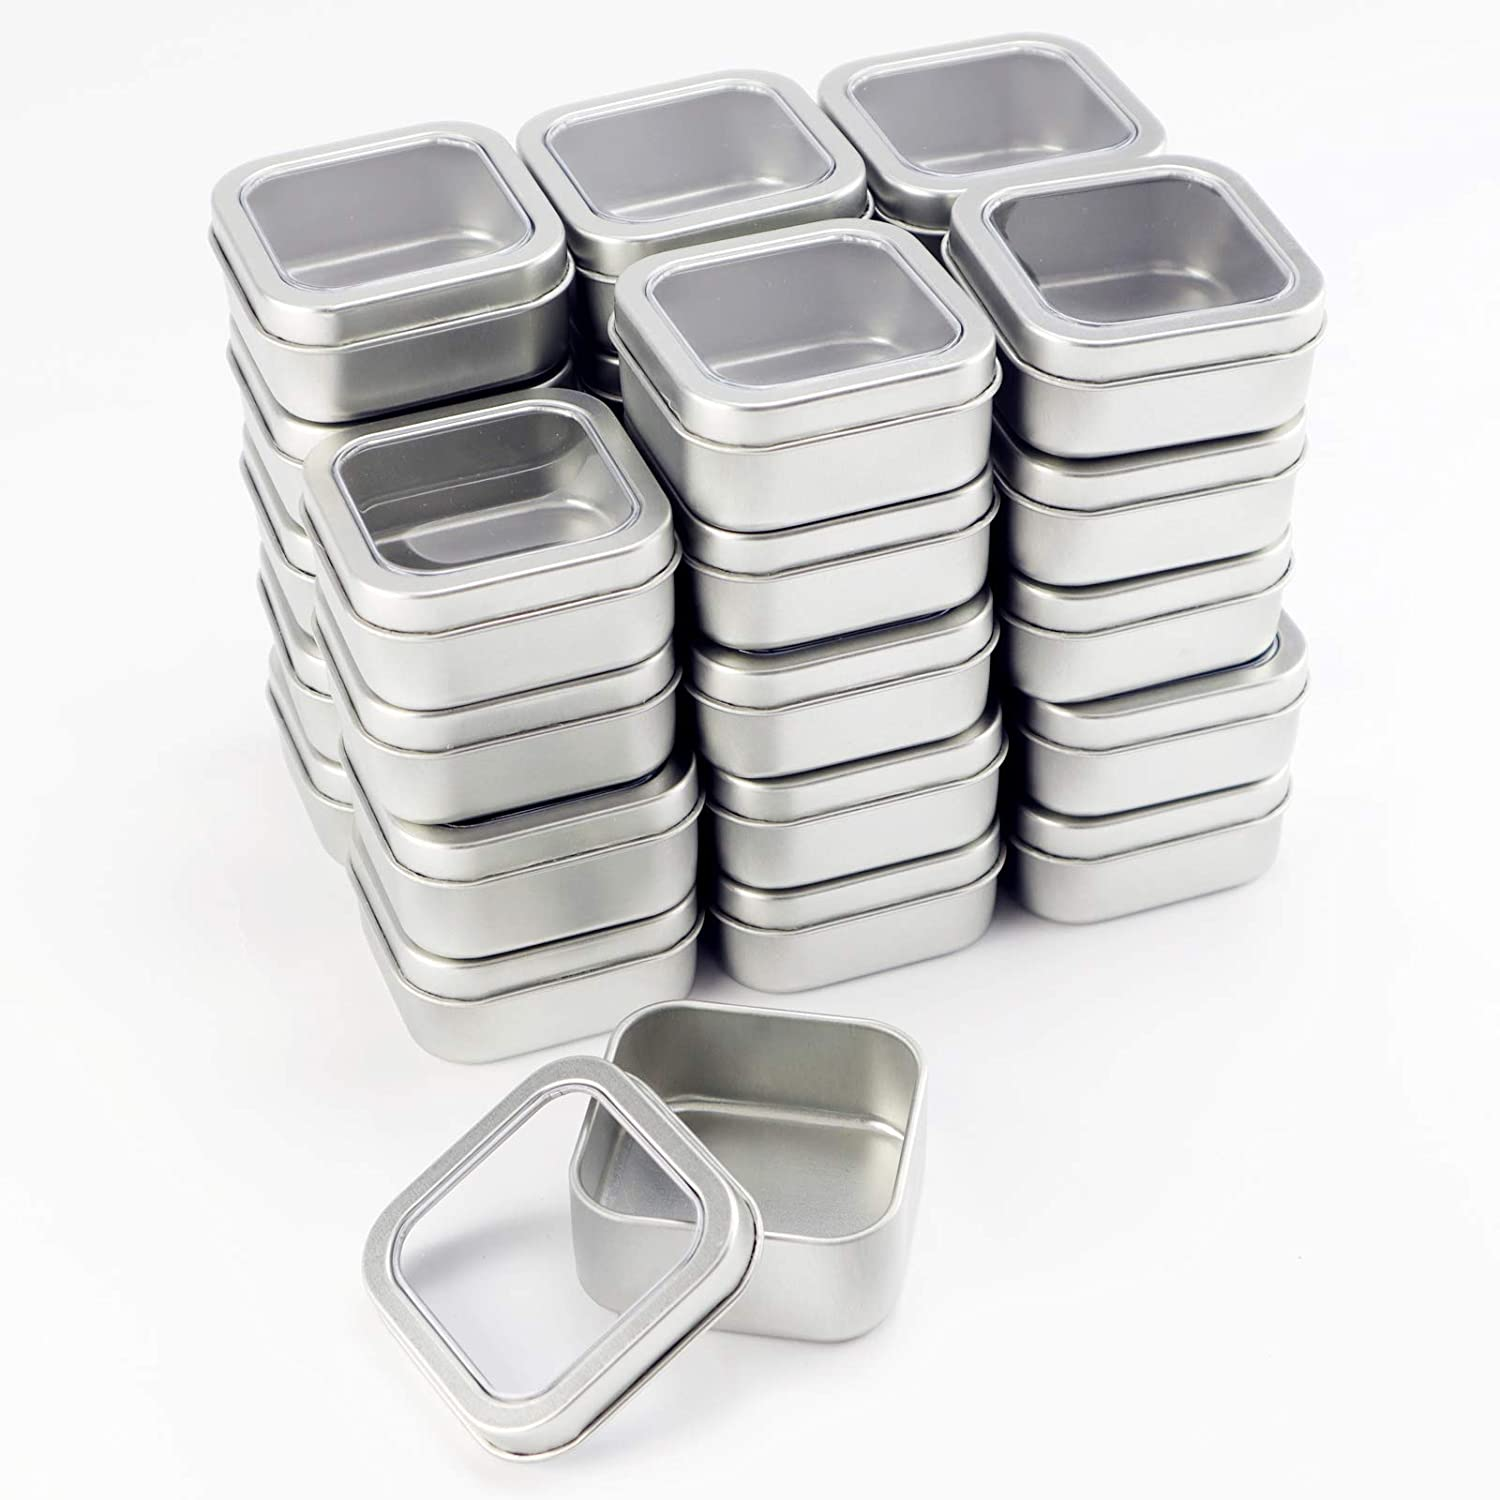 Square Metal Tins with Window Lids by Celebrate It, 30ct.